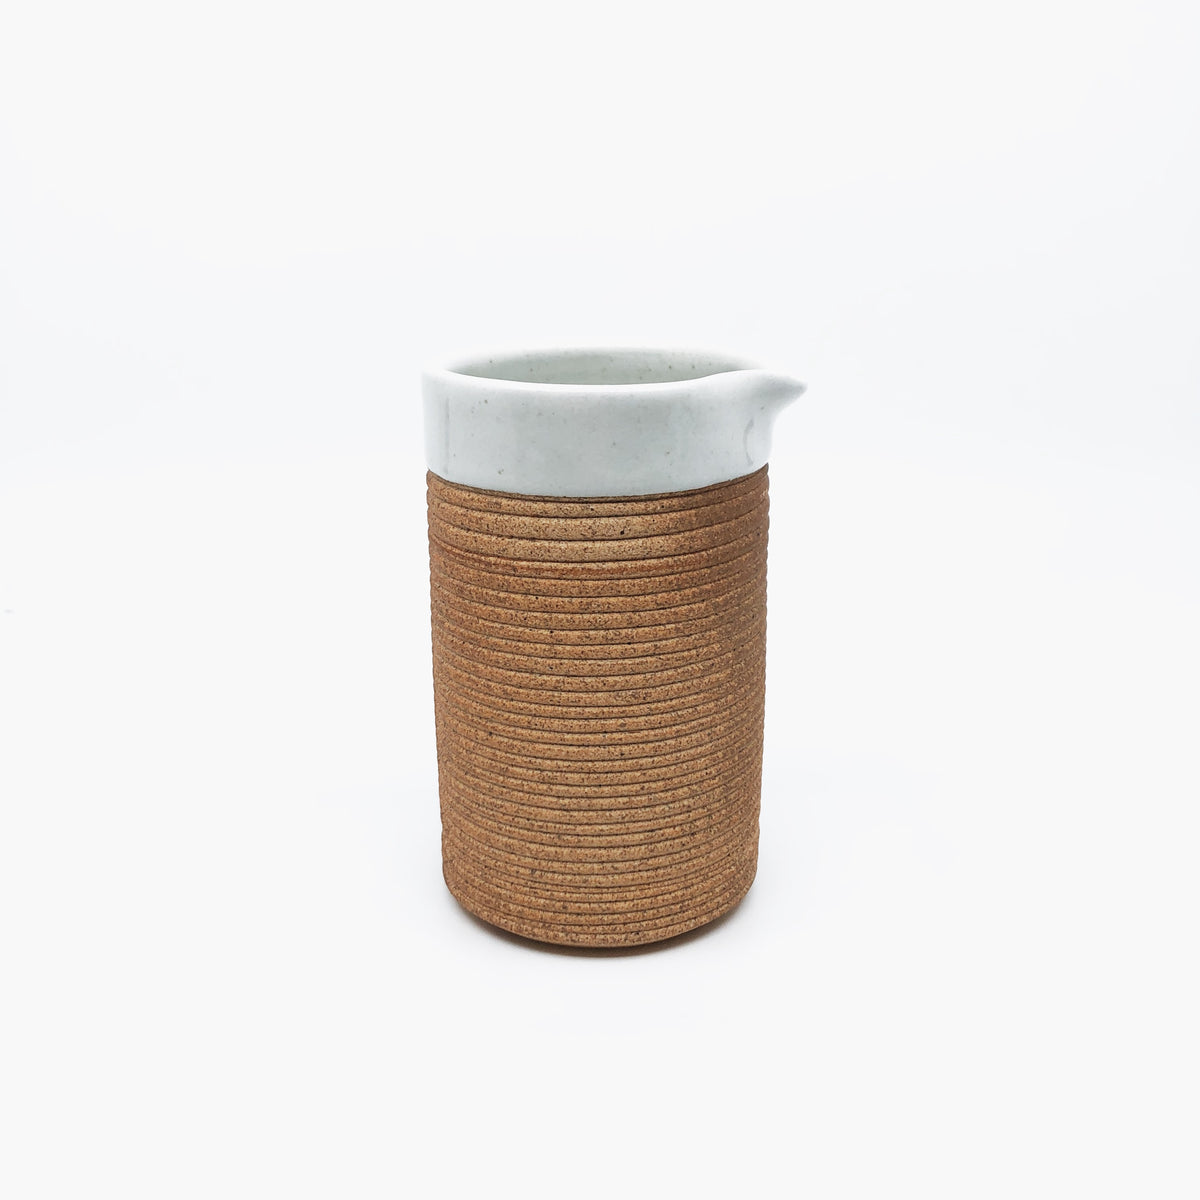 Ribbed Terracotta Jug